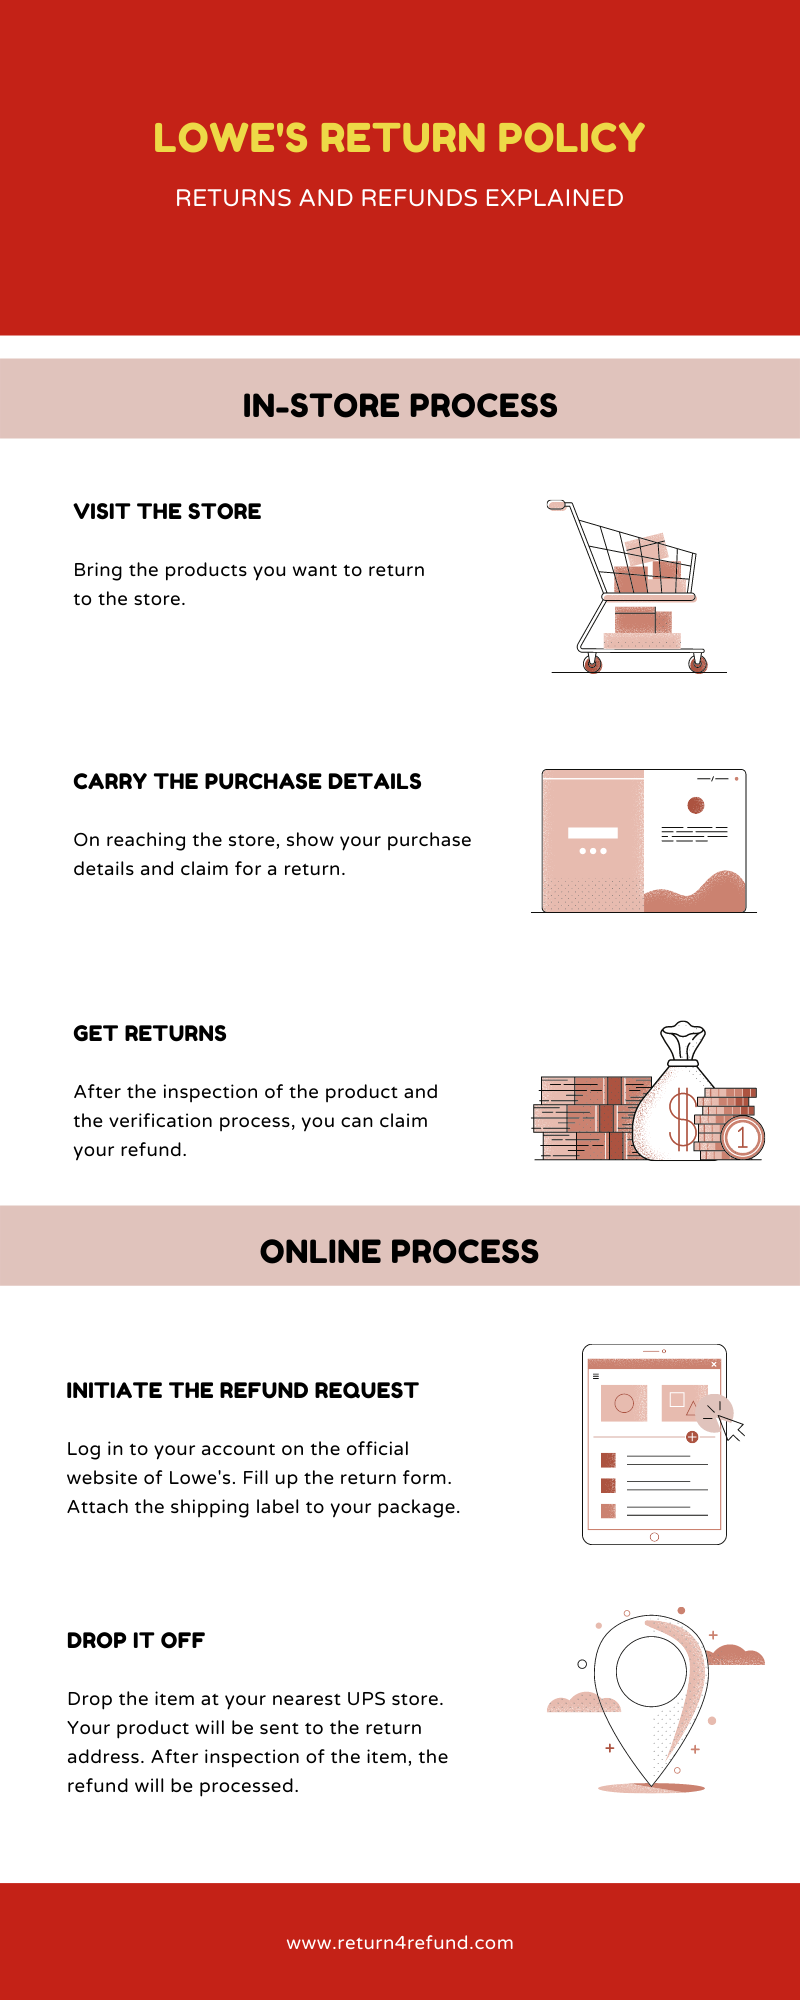 Lowe's Return Policy infographic